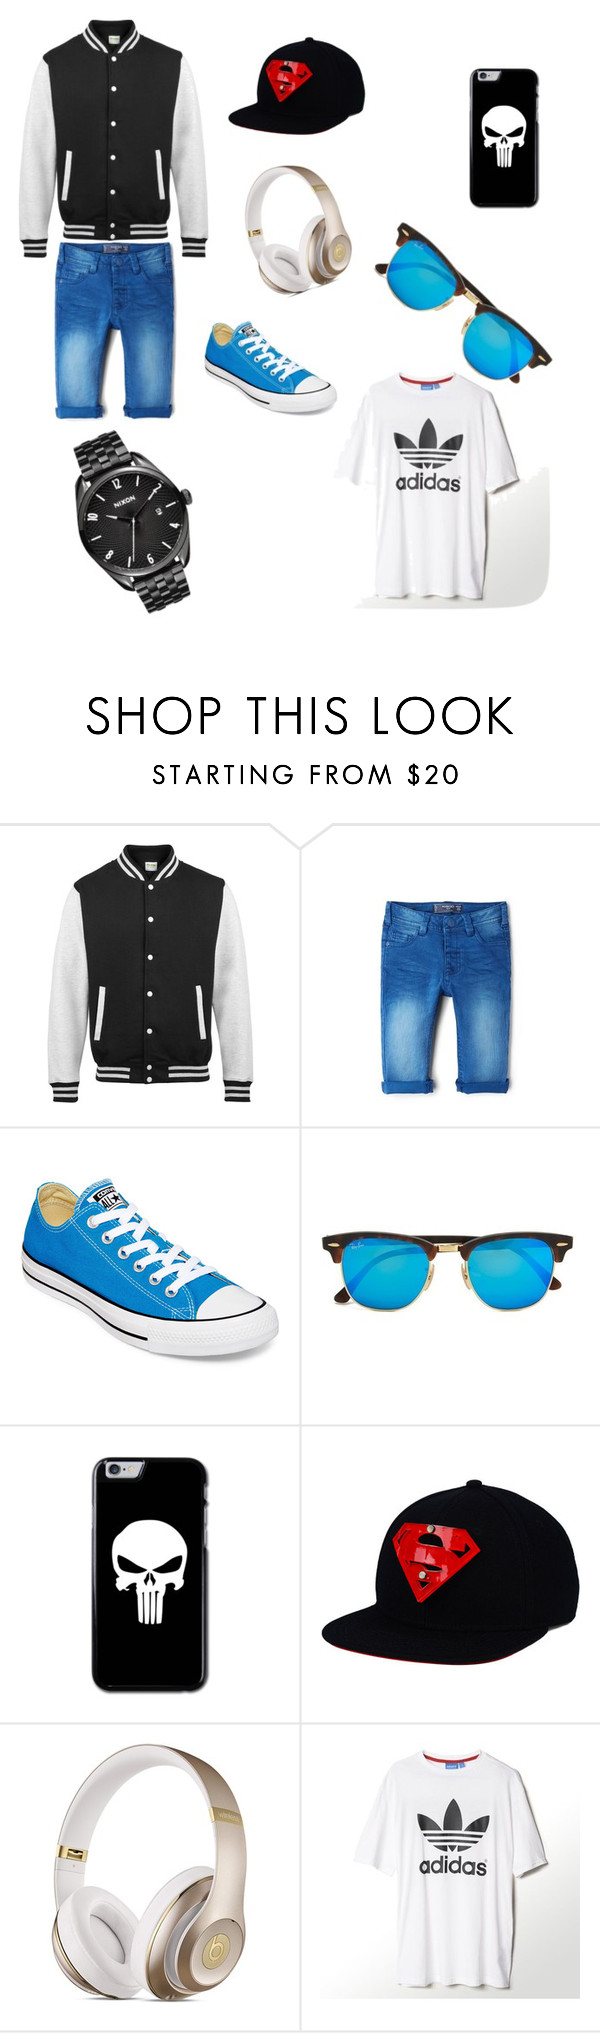 """Boy's style :)"" by alem-nuhanovic ❤ liked on Polyvore featuring MANGO, Converse, Ray-Ban, Beats by Dr. Dre, adidas, Nixon, women's clothing, women, female and woman"